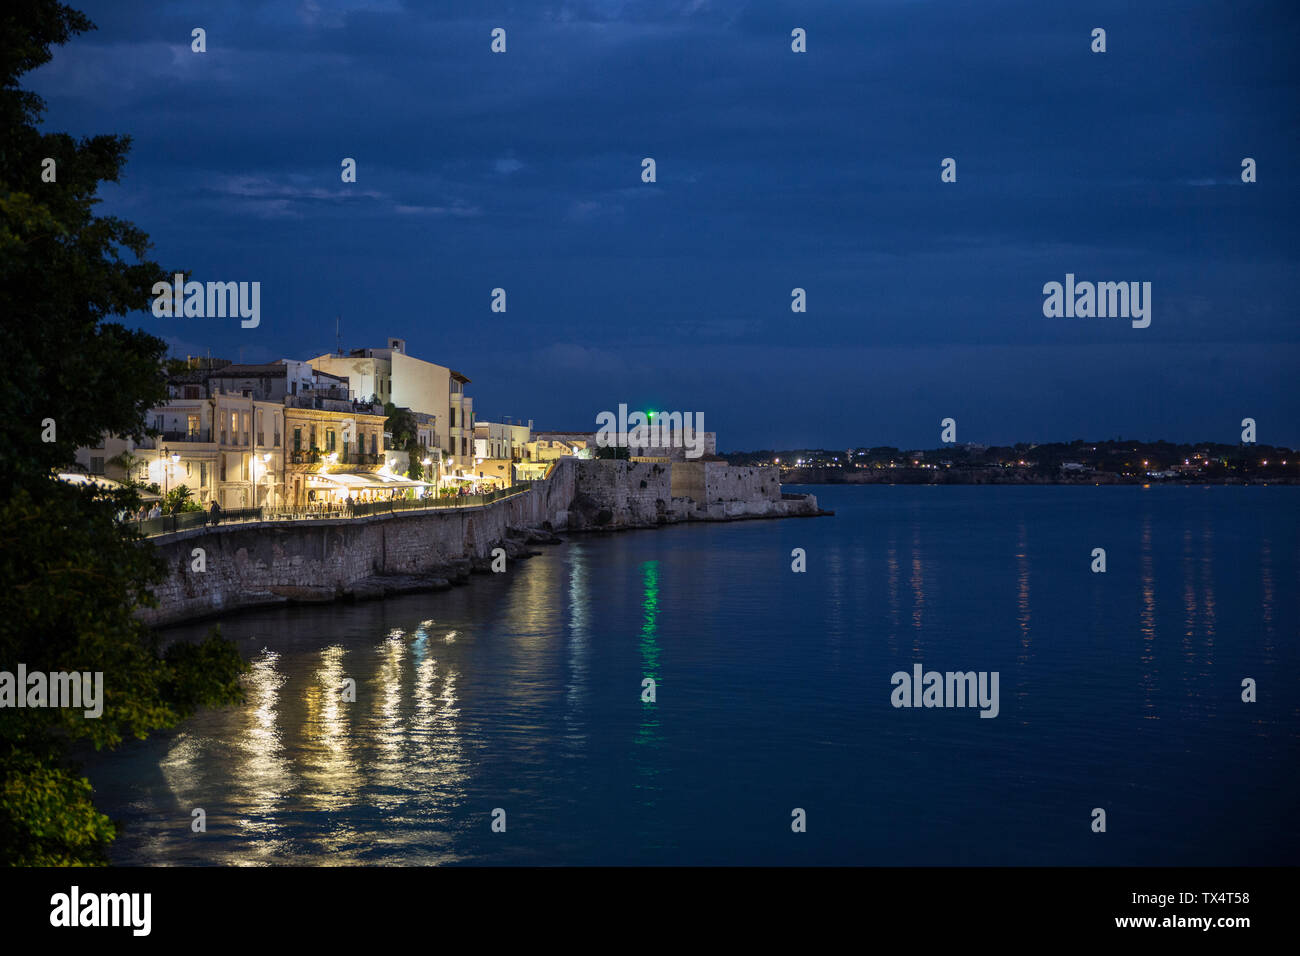 Italy, Sicily, Ortygia, Syracuse, view of Castello Maniace at dusk - Stock Image